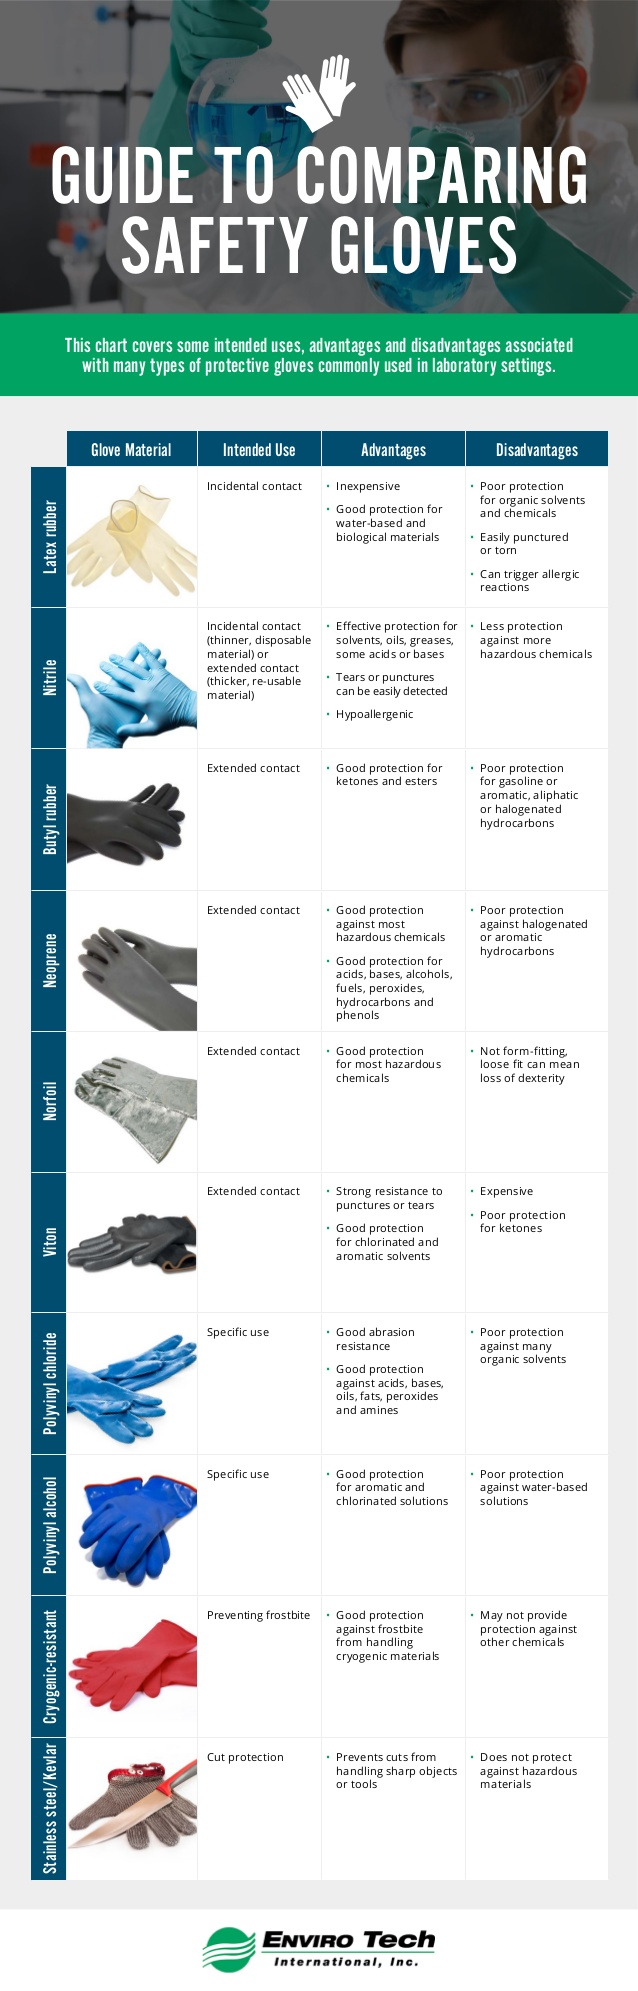 guide-to-comparing-safety-gloves